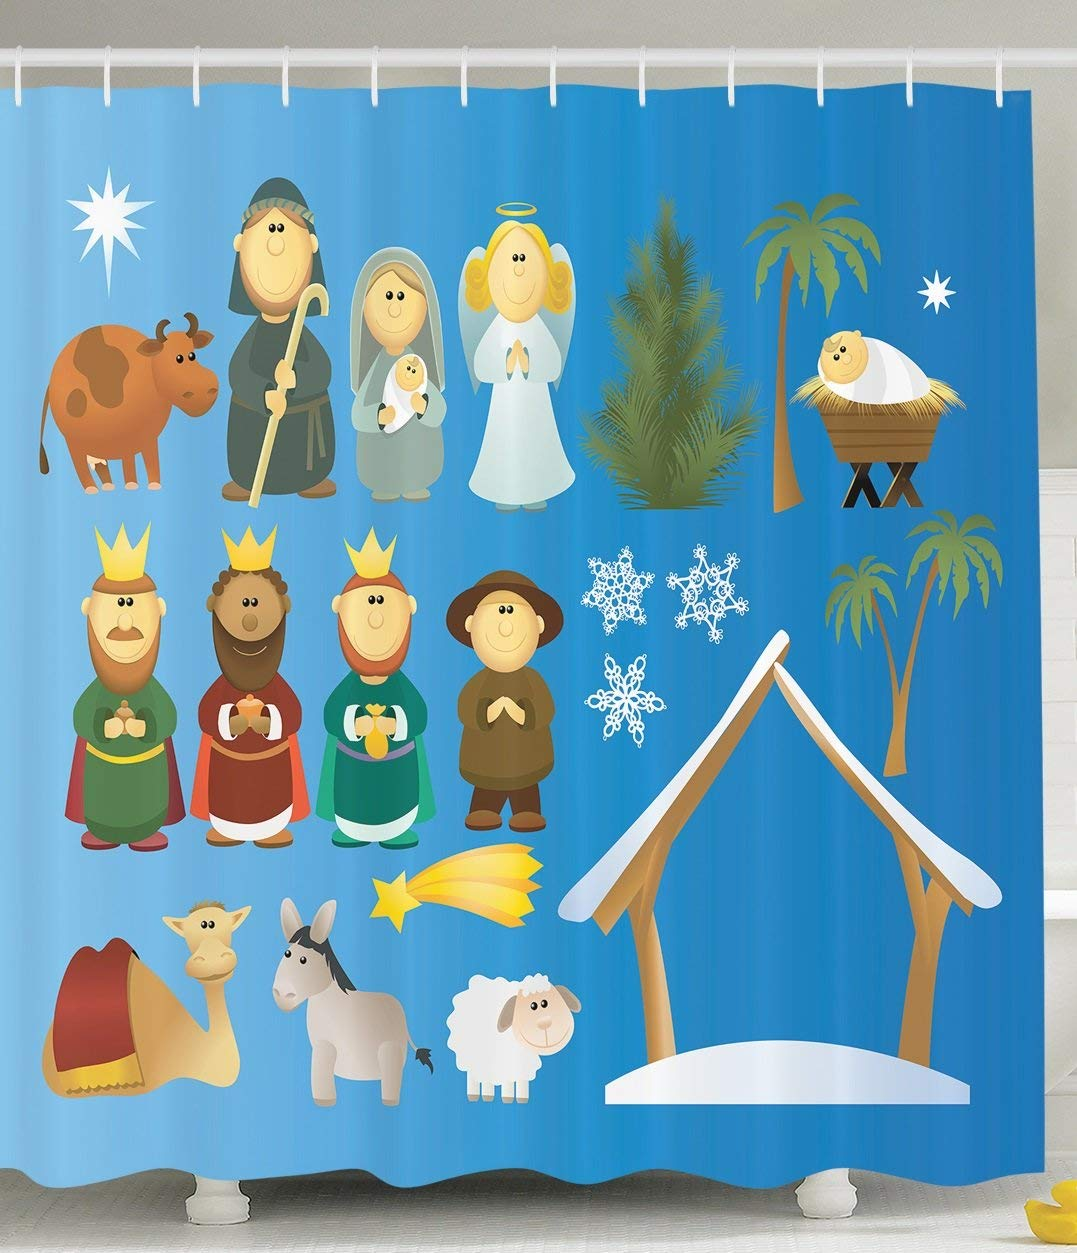 Gifts Nativity Decoration Theme Birth of Faith Cartoon Holy Figures Traditional Art Marry Illustration Fabric Shower Curtain